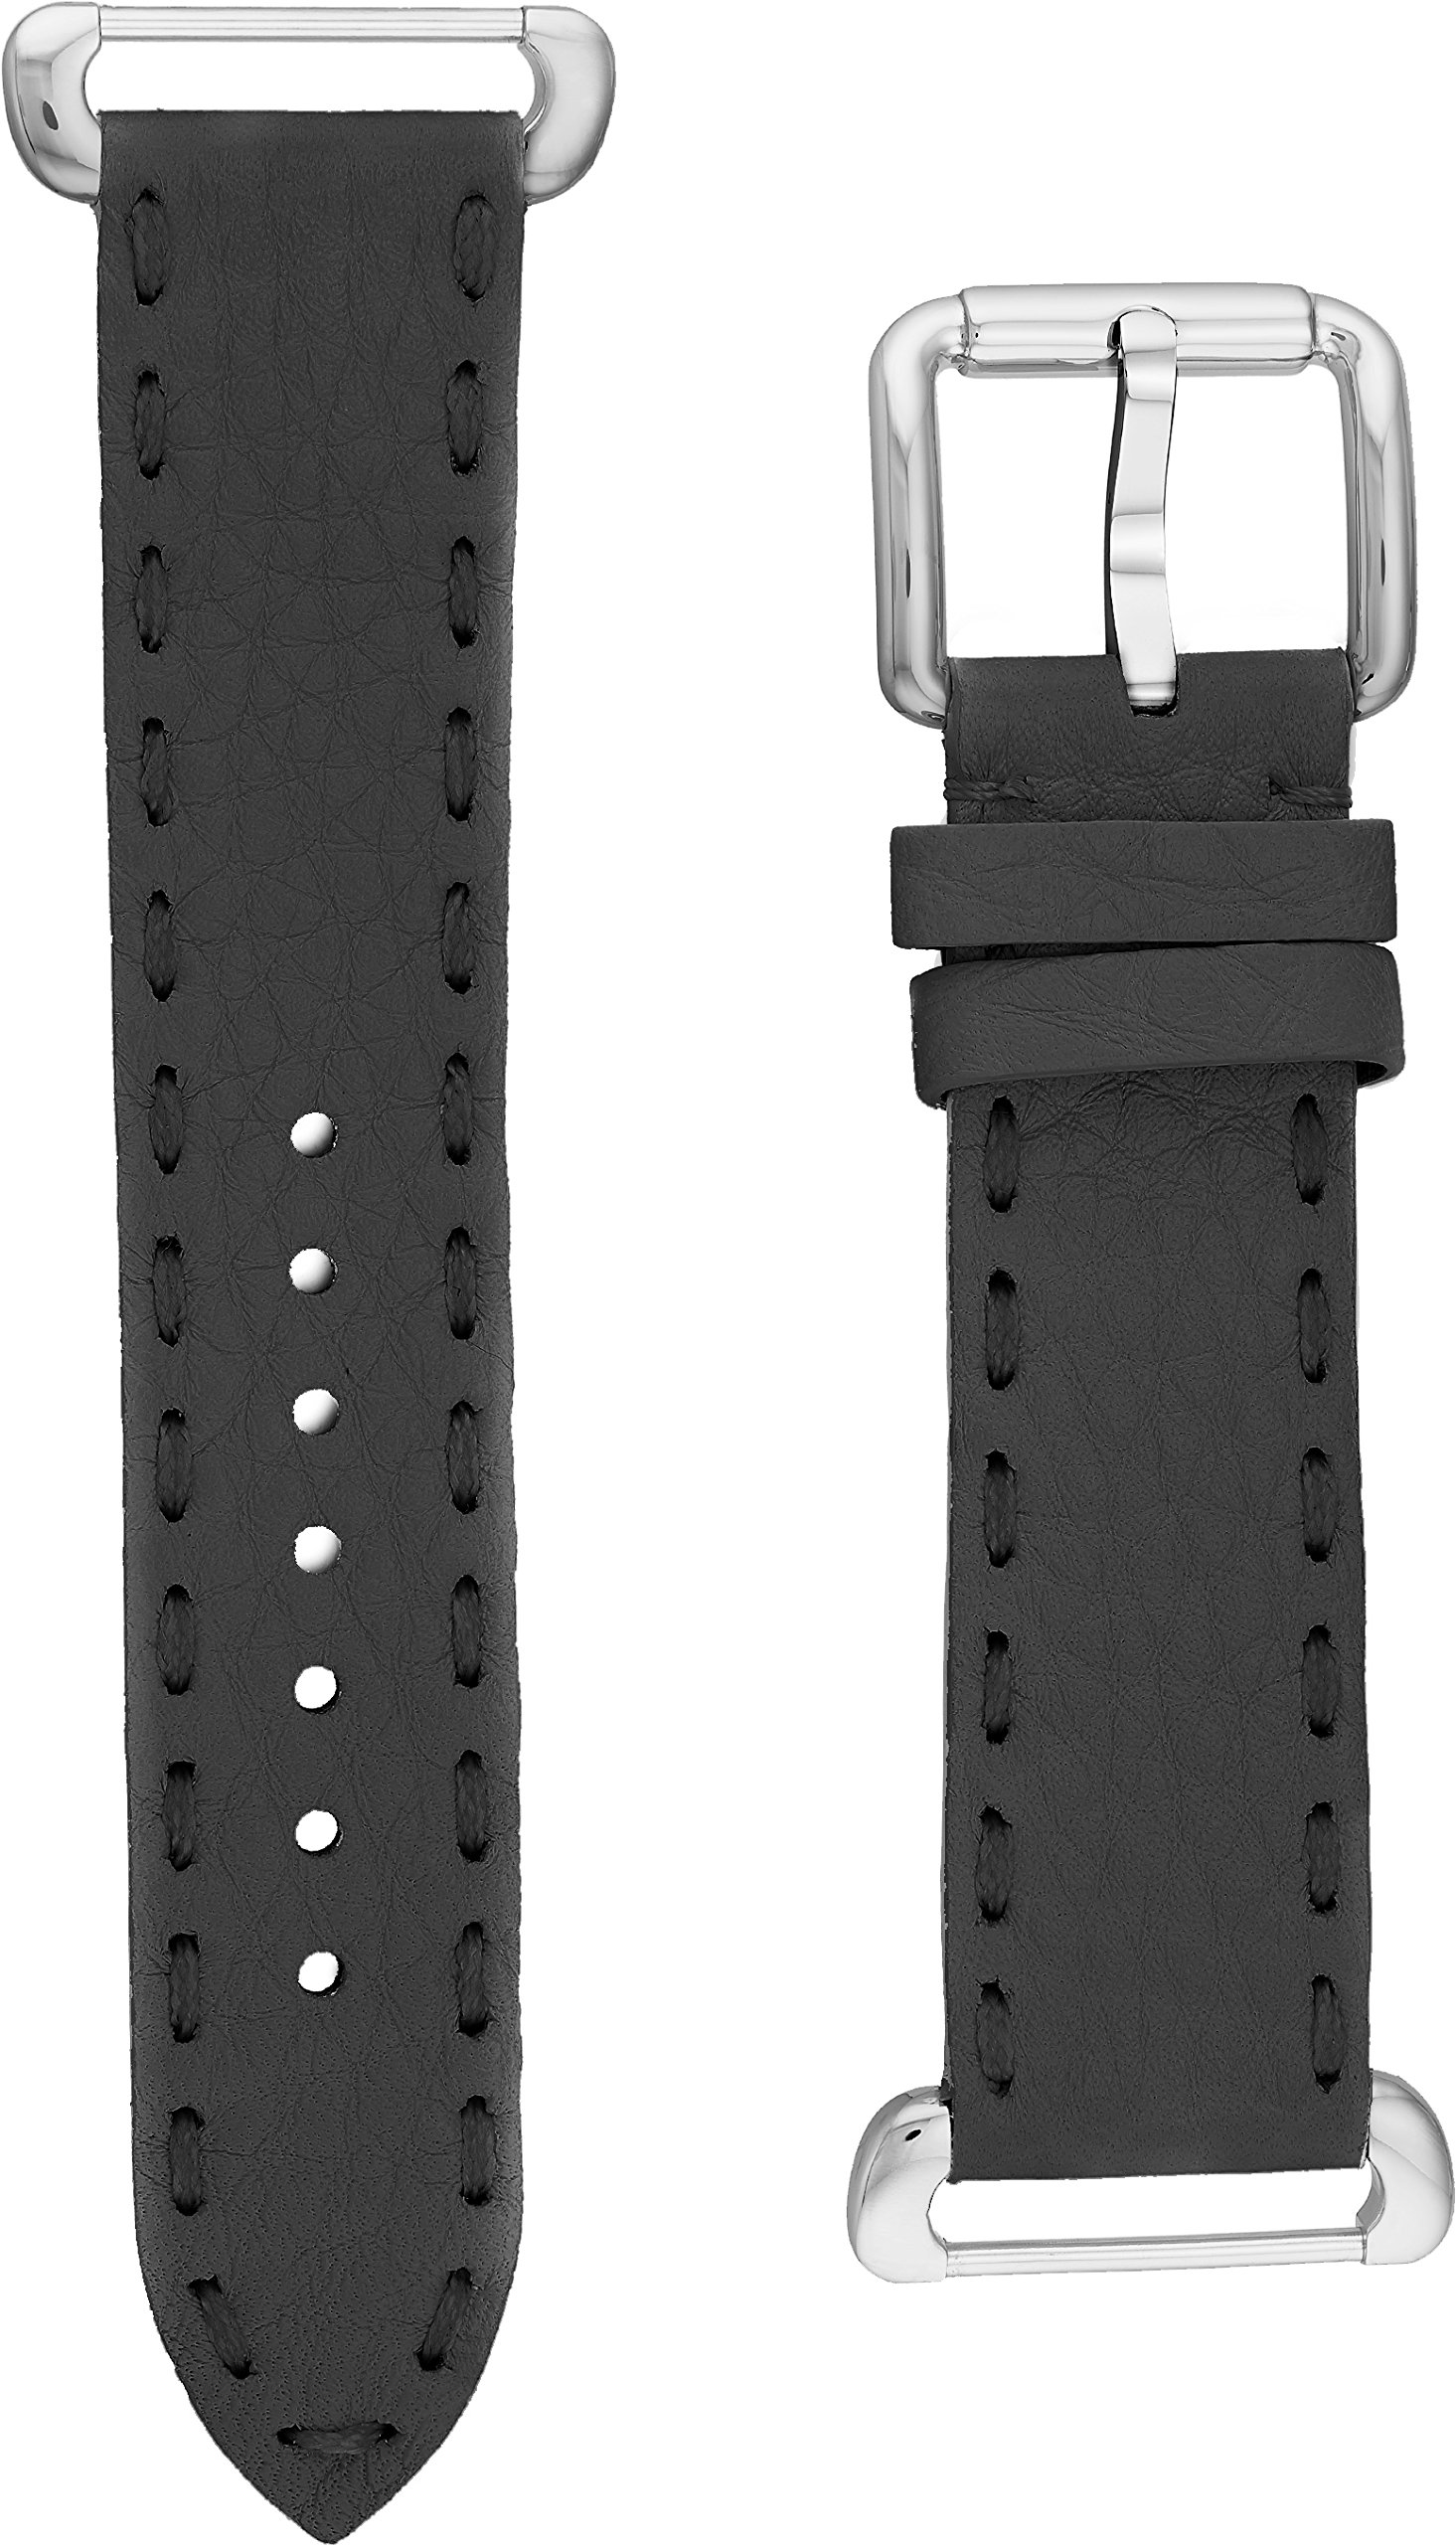 Fendi Selleria Interchangeable Replacement Watch Band - 18mm Grey Calfskin Leather Strap with Pin Buckle SSN18R06S